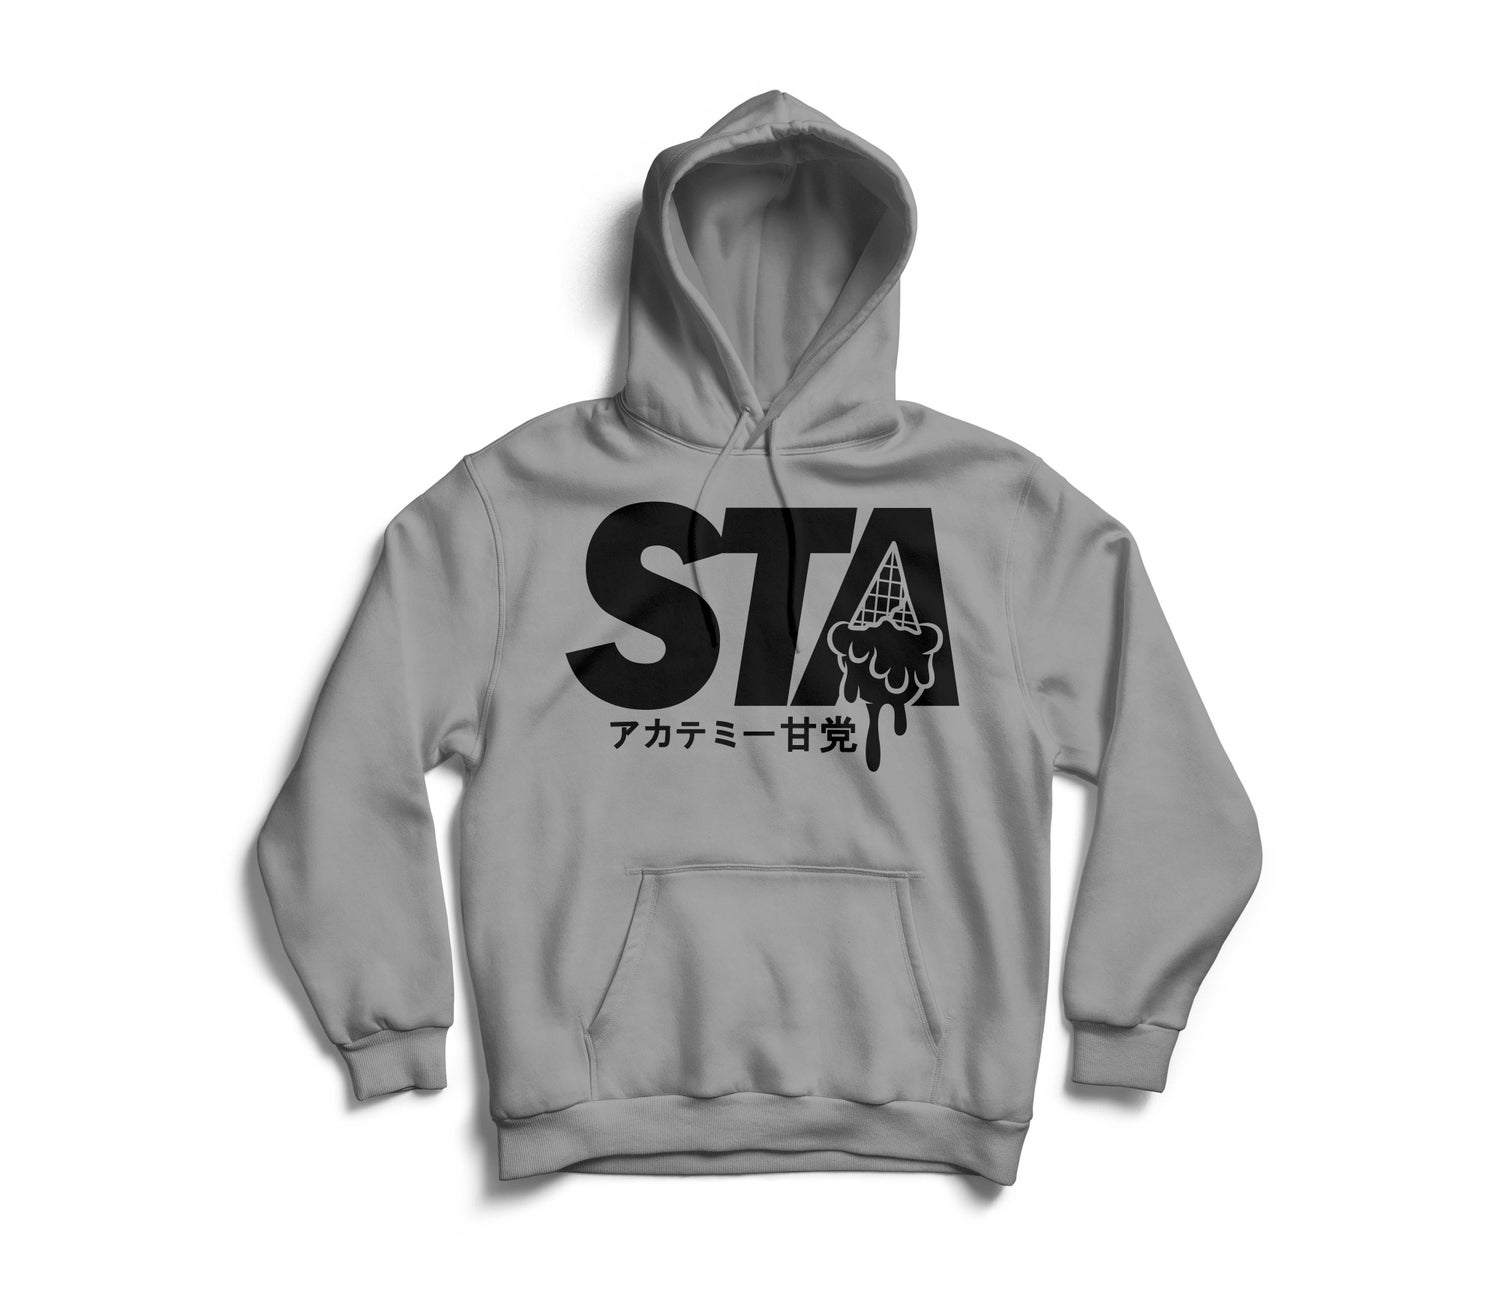 Image of Sta Last Drip Grey Hoody w/ Black